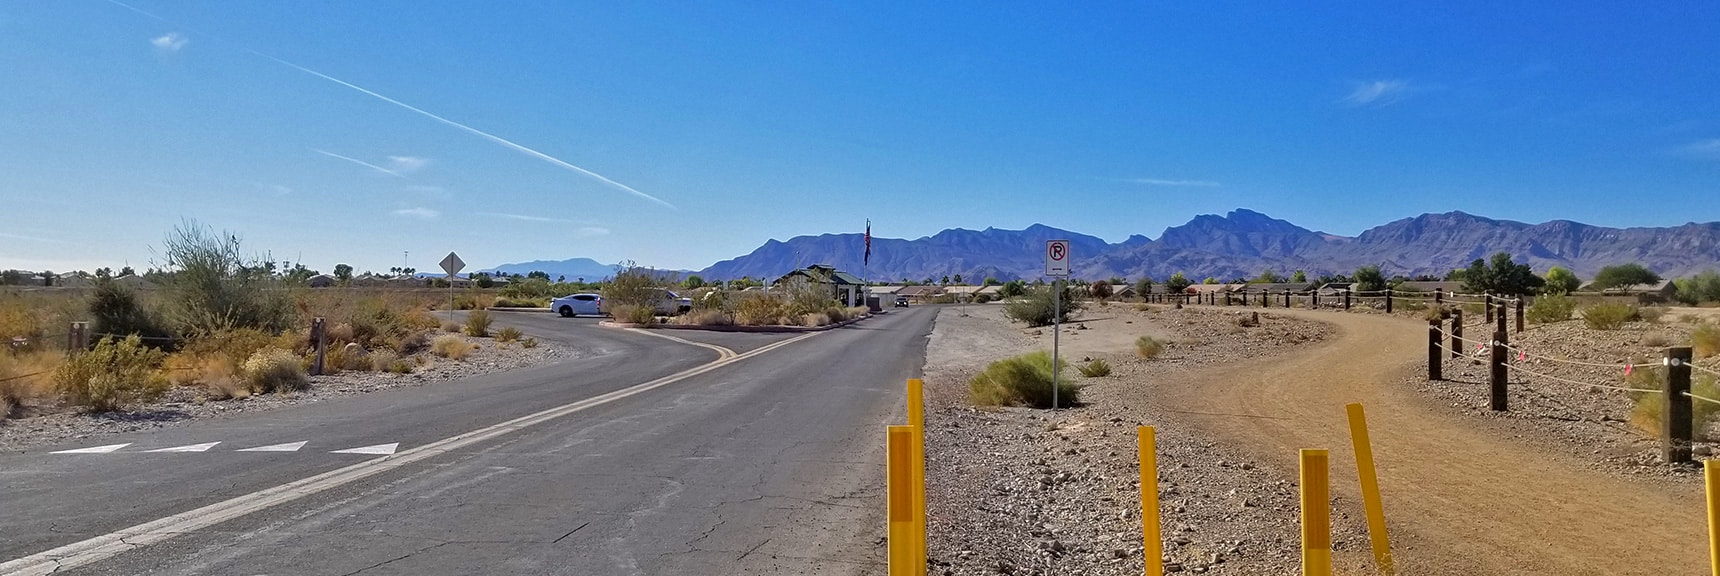 Heading Out the Main Entrance of Floyd Lamb Park on Brent St   Centennial Hills Mountain Bike Conditioning Adventure Loop, Las Vegas, Nevada